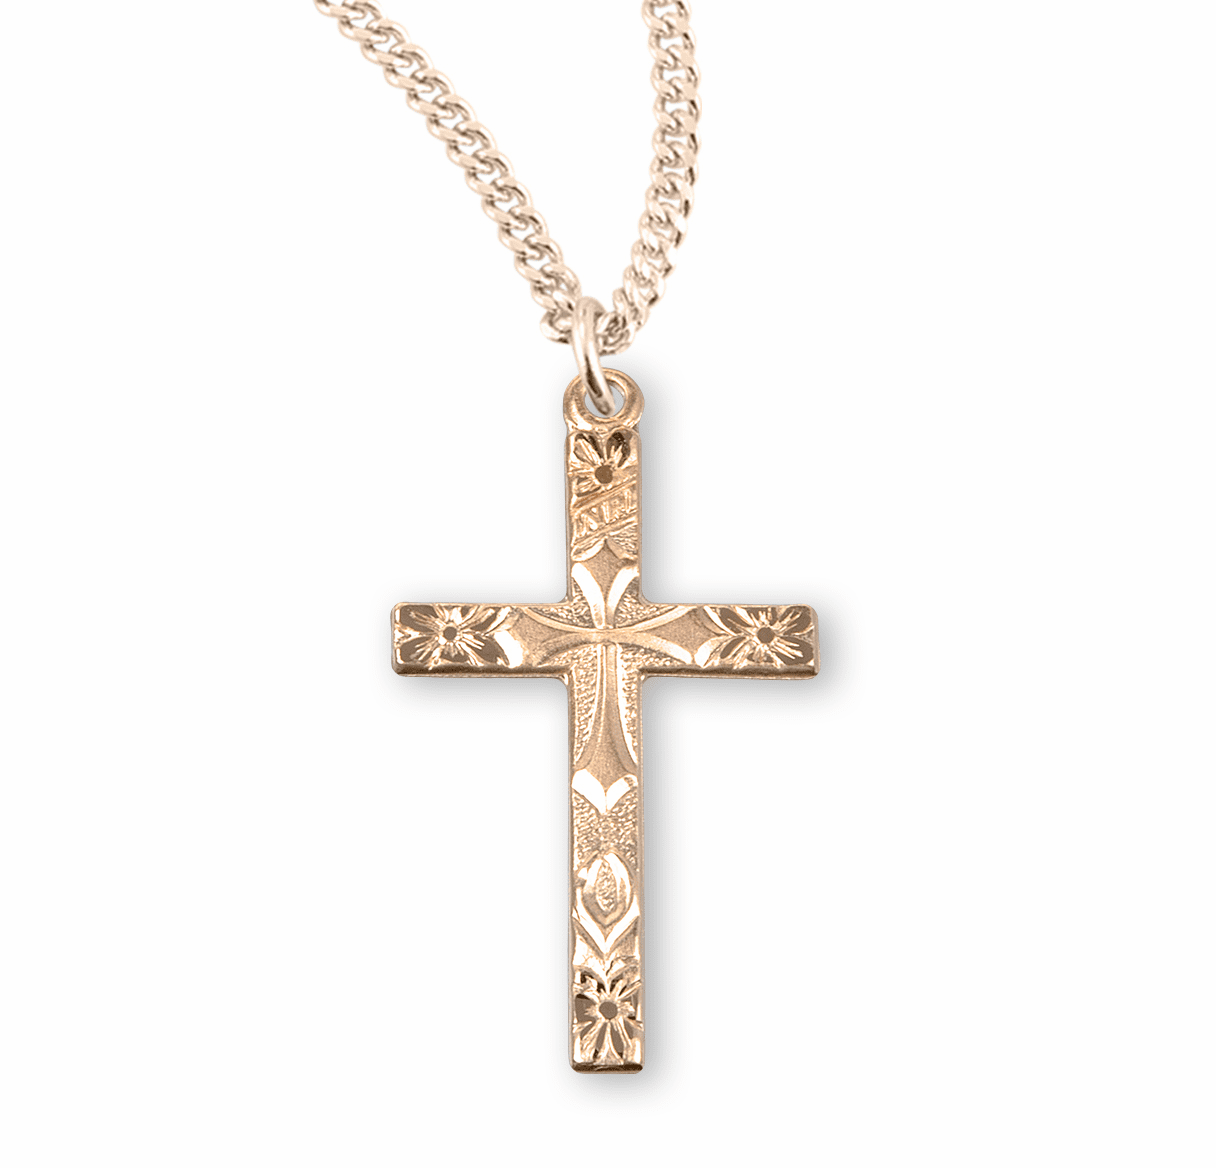 Flowered Tip Gold/Sterling Silver Cross Necklace by HMH Religious